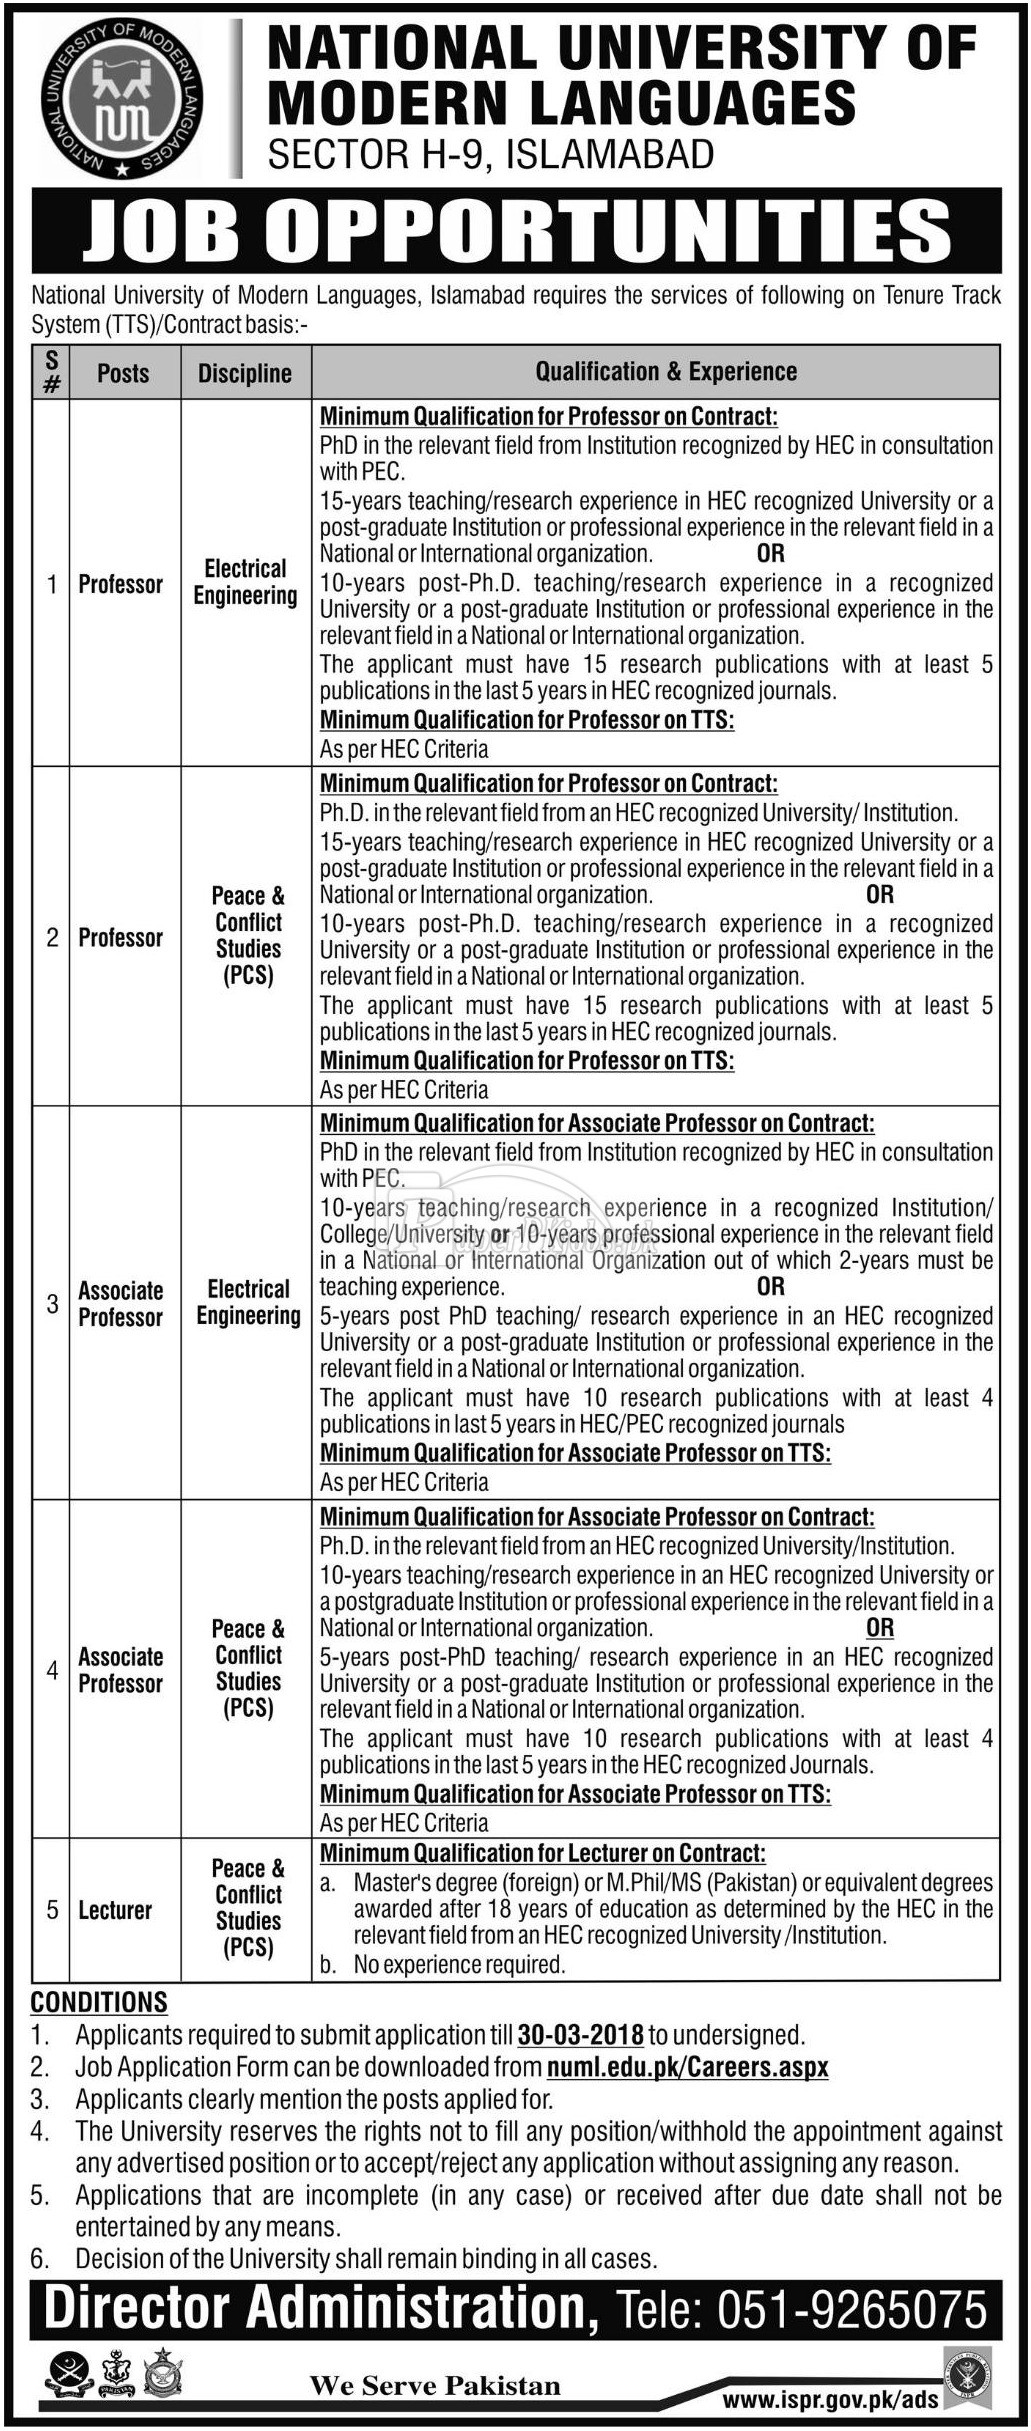 National University of Modern Languages NUML Islamabad Jobs 2018